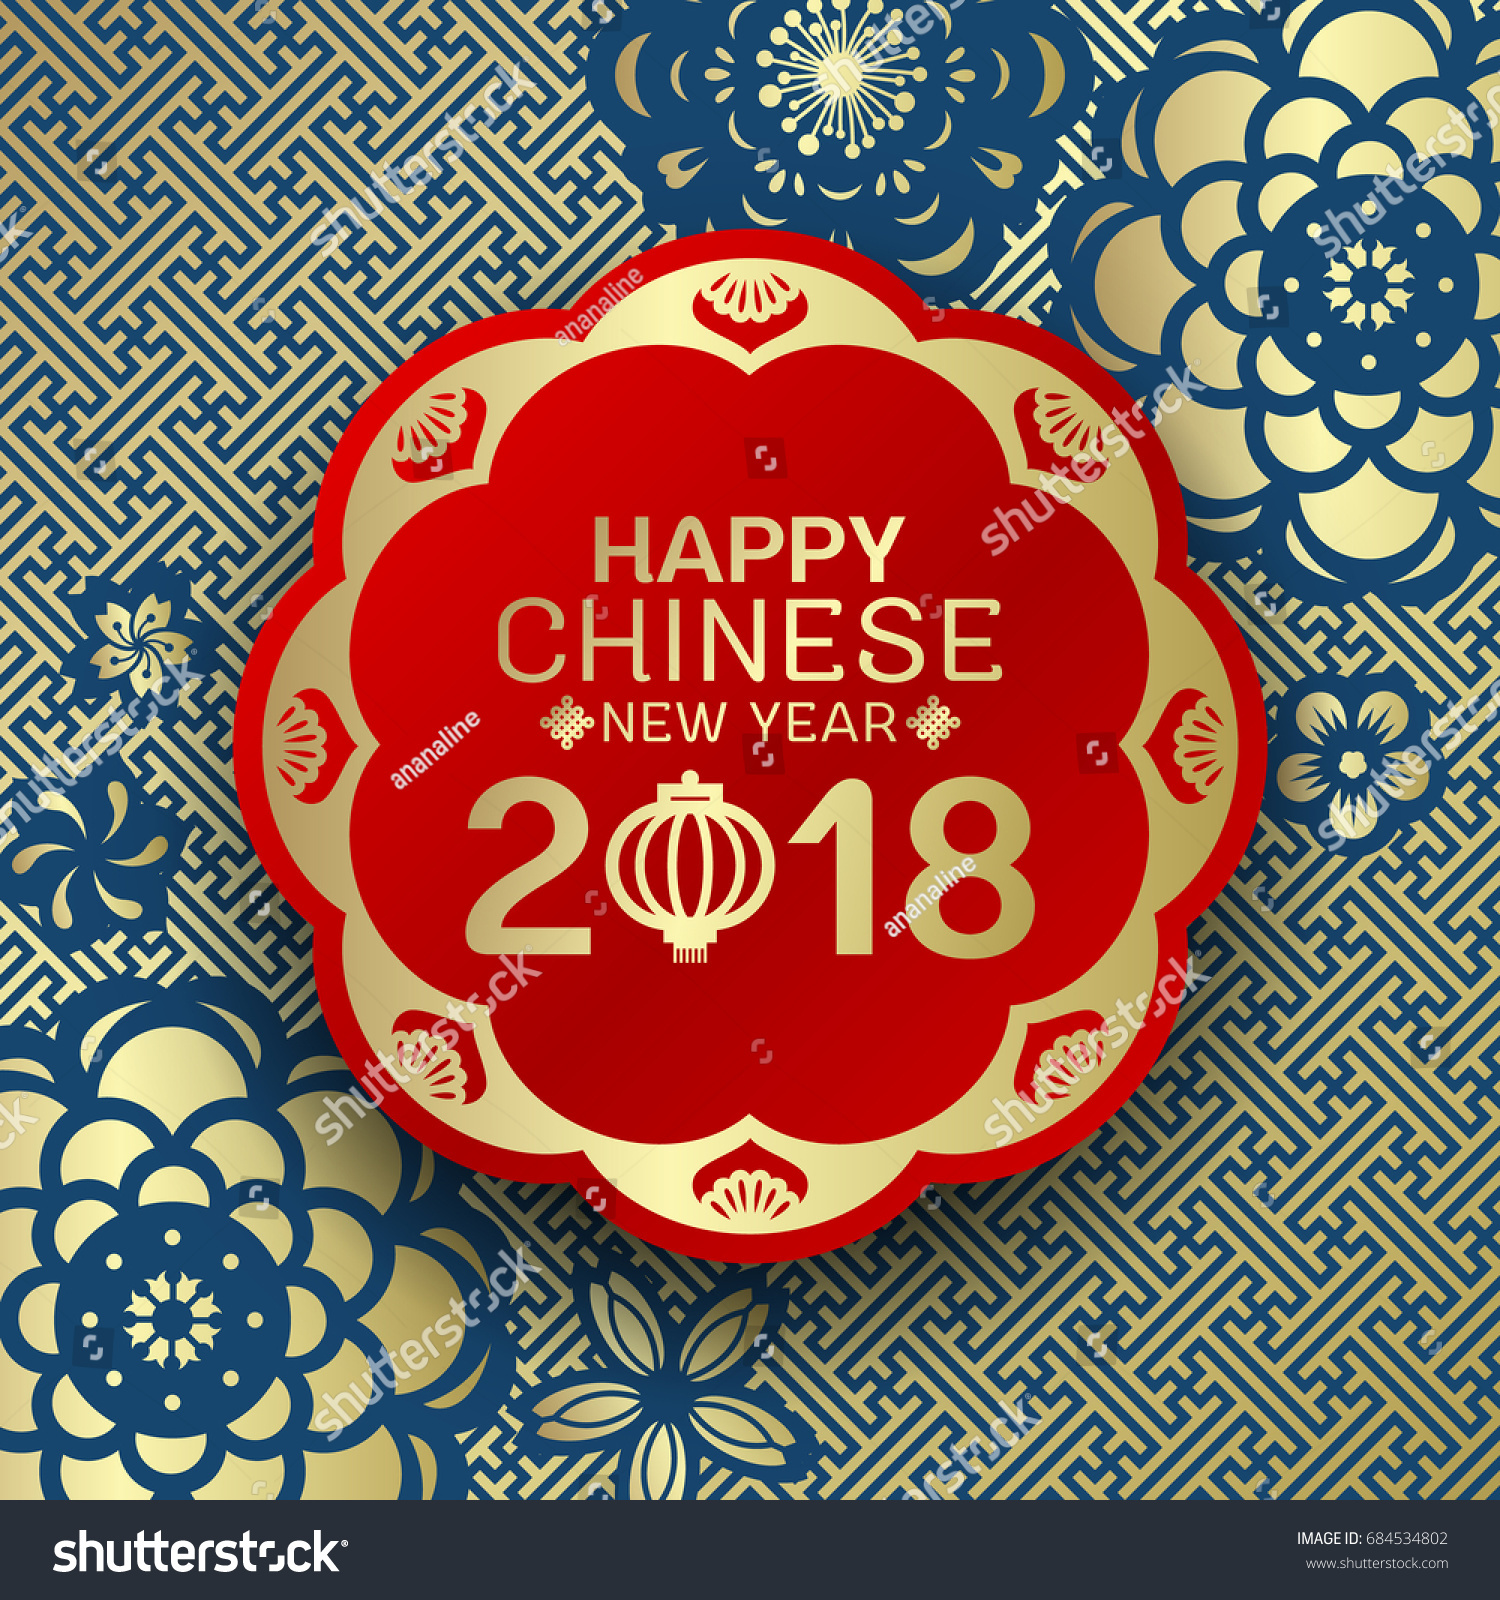 2018 chinese new year background